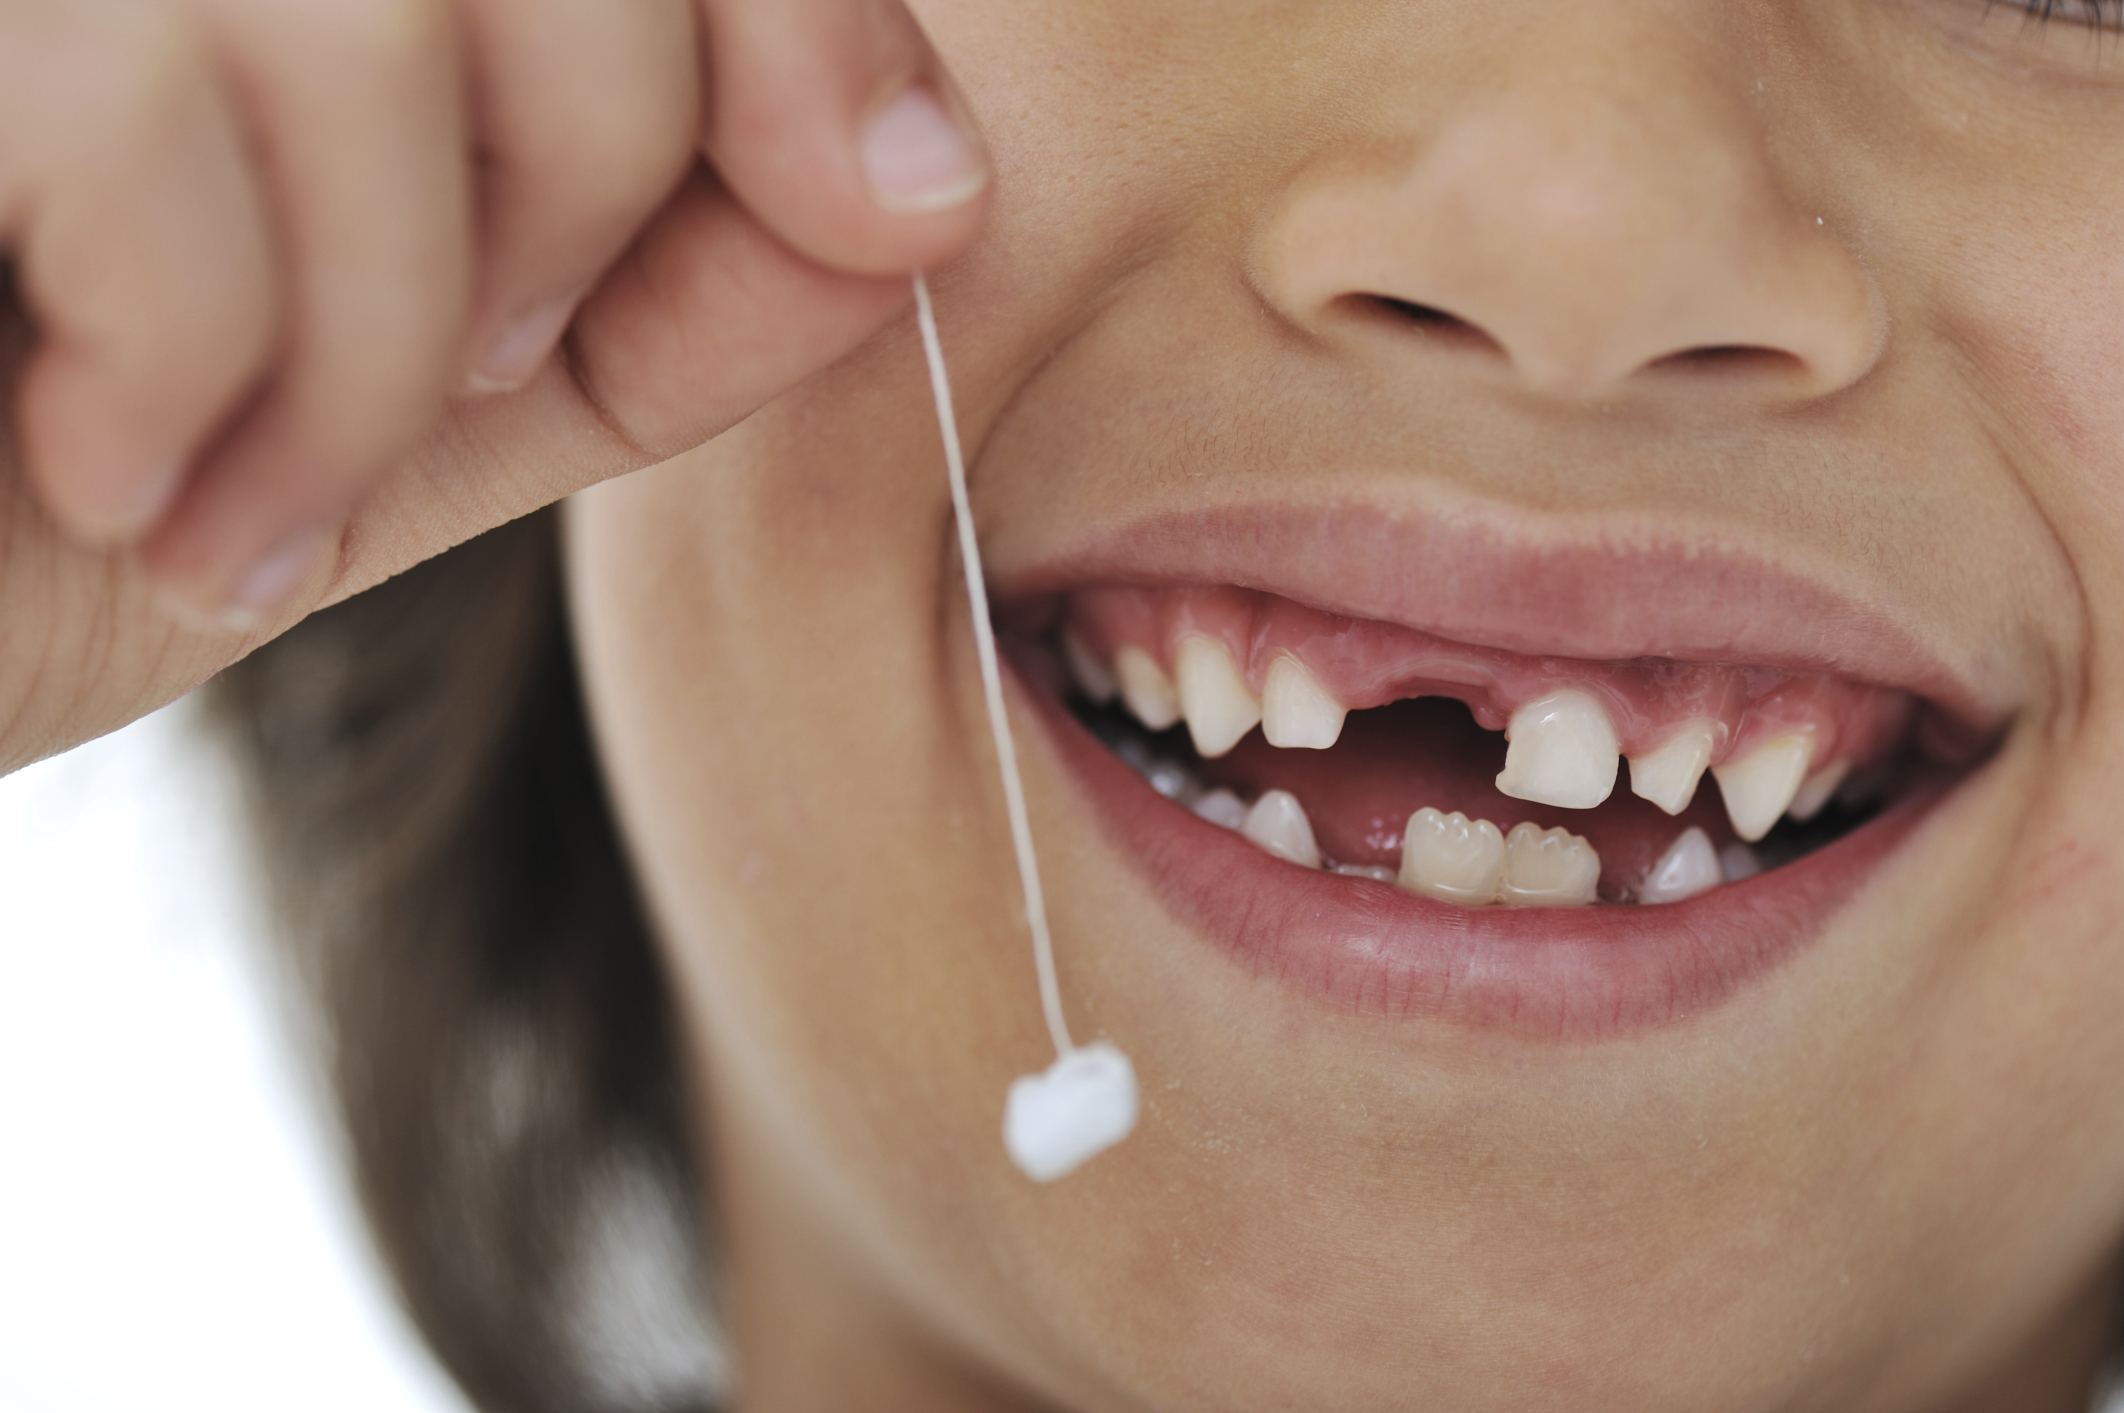 Children are so happy when they successfully remove their own teeth!